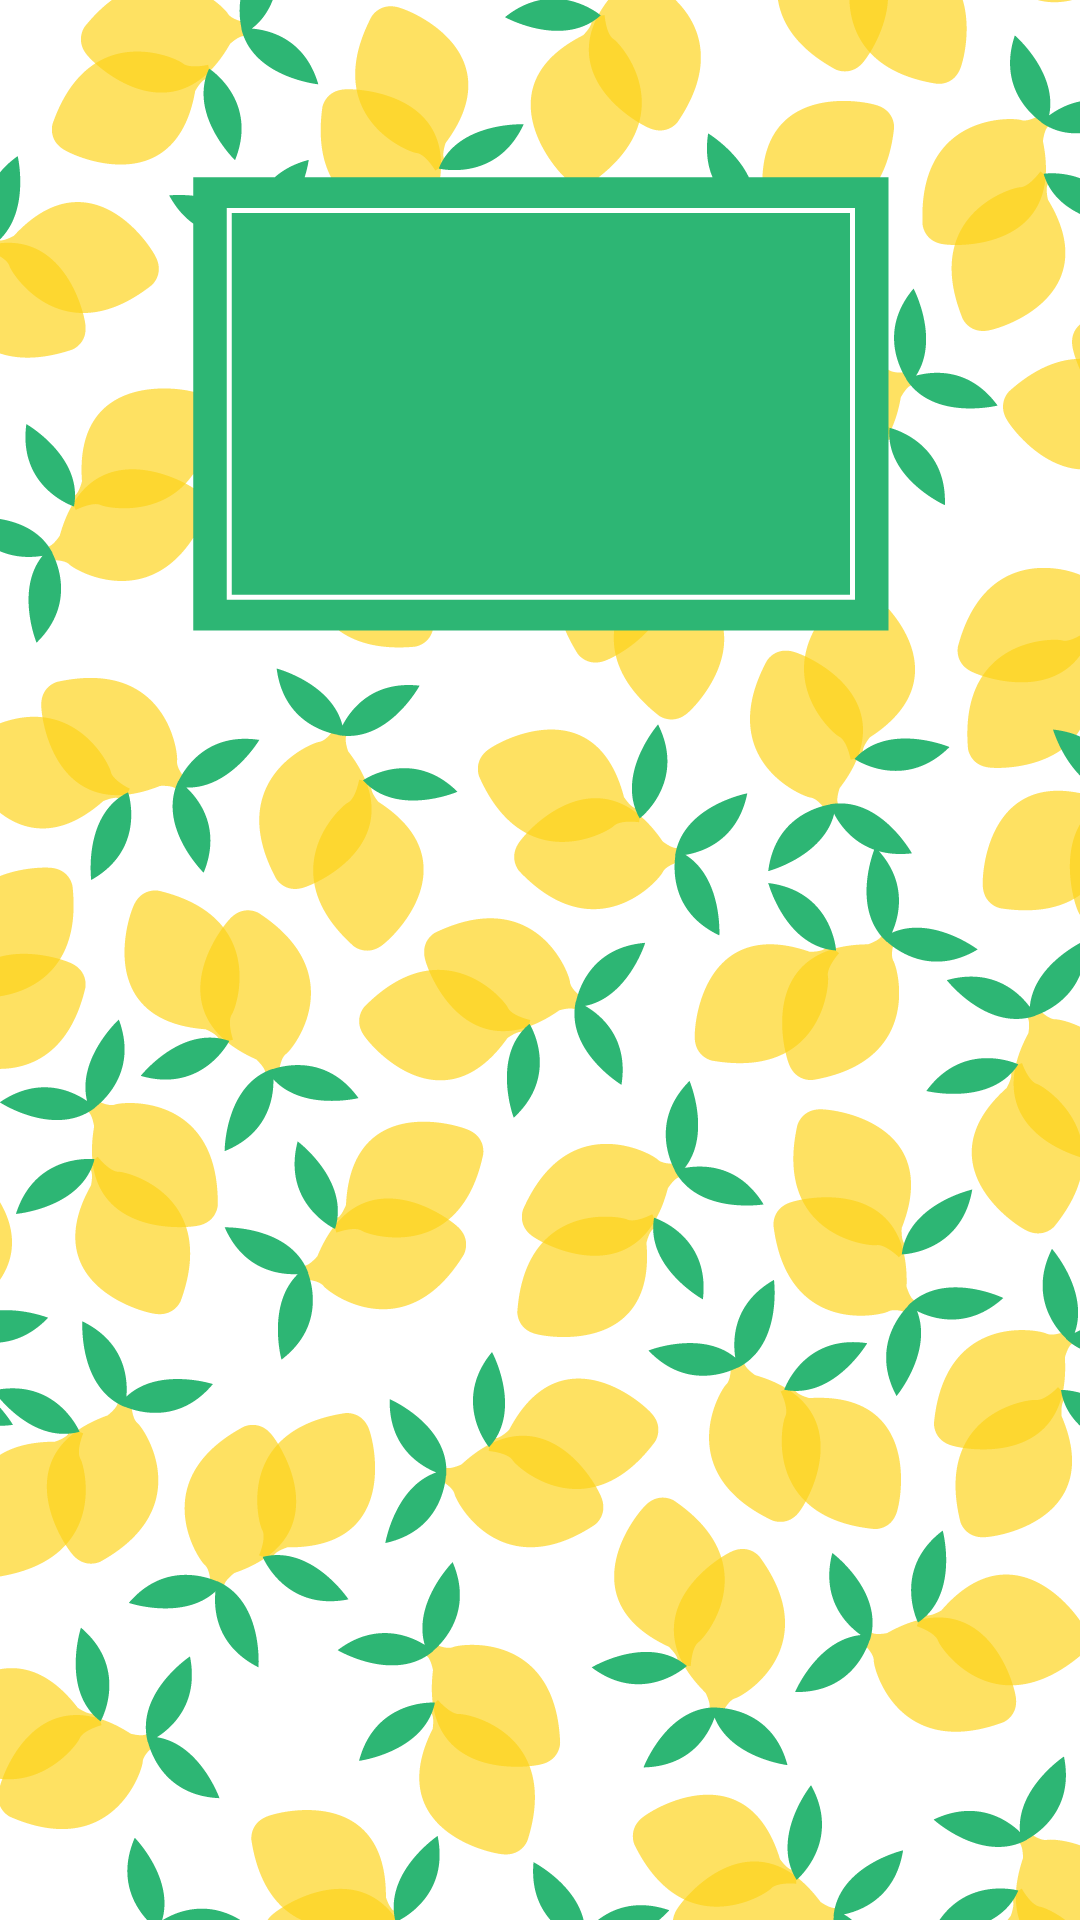 Free Phone Backgrounds Simplified By Emily Ley